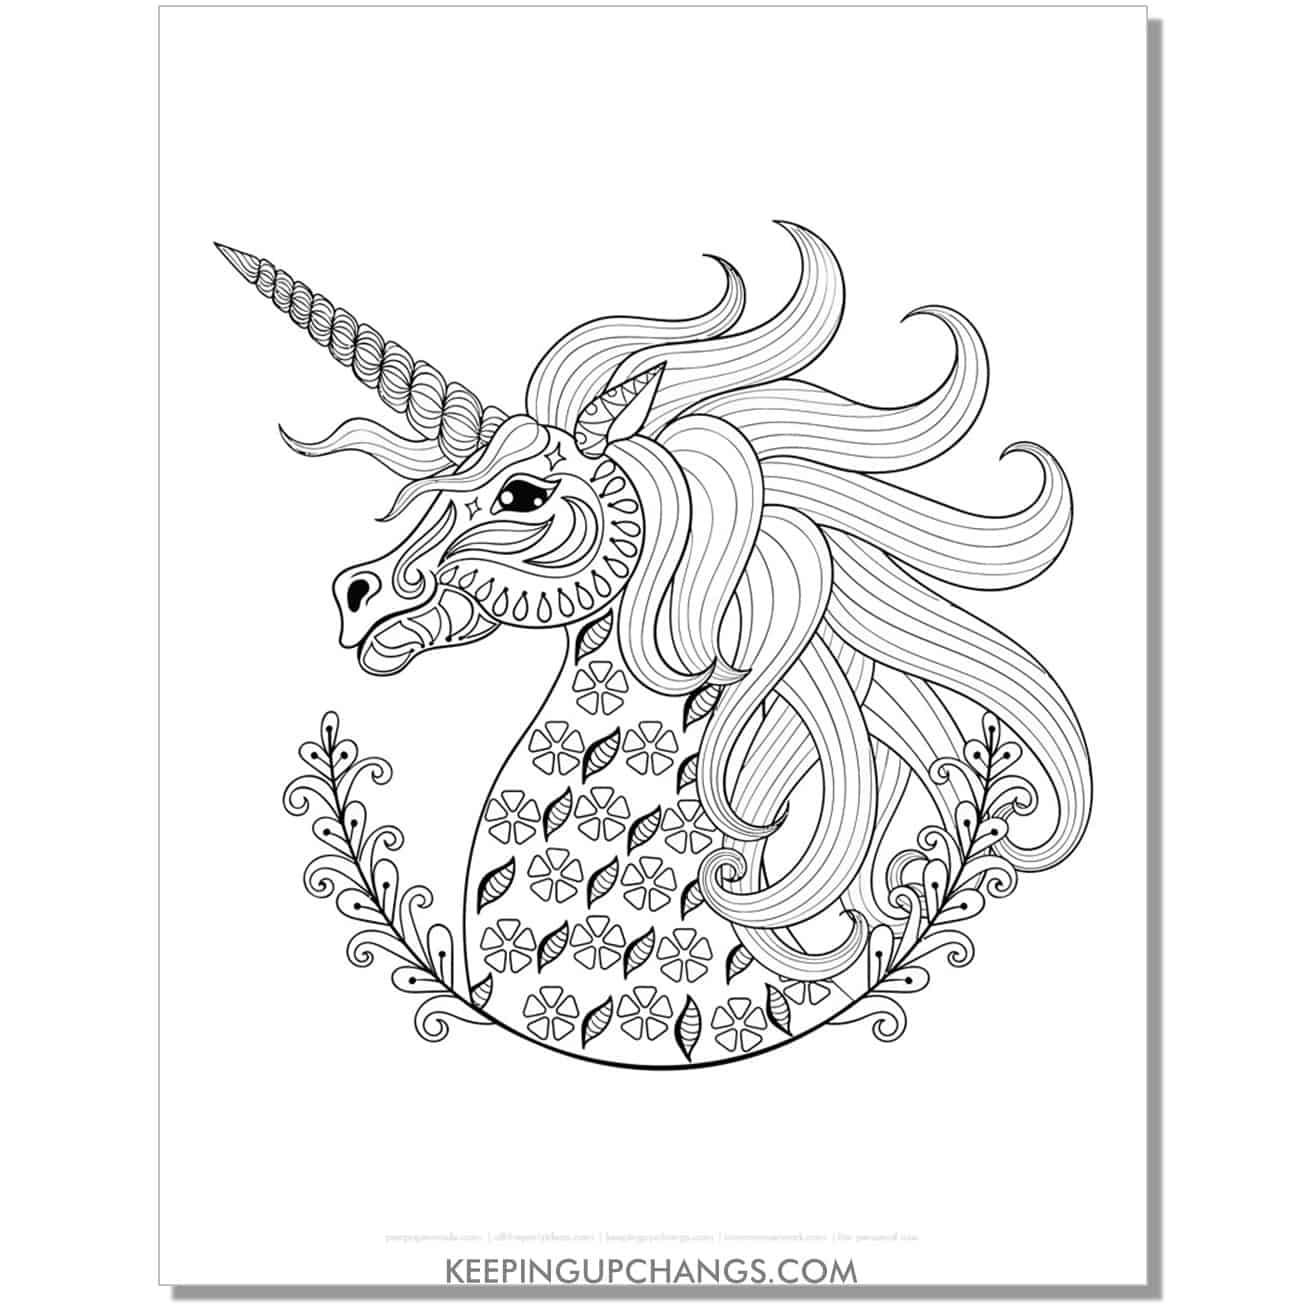 gothic unicorn zentangle with half wreath coloring page.